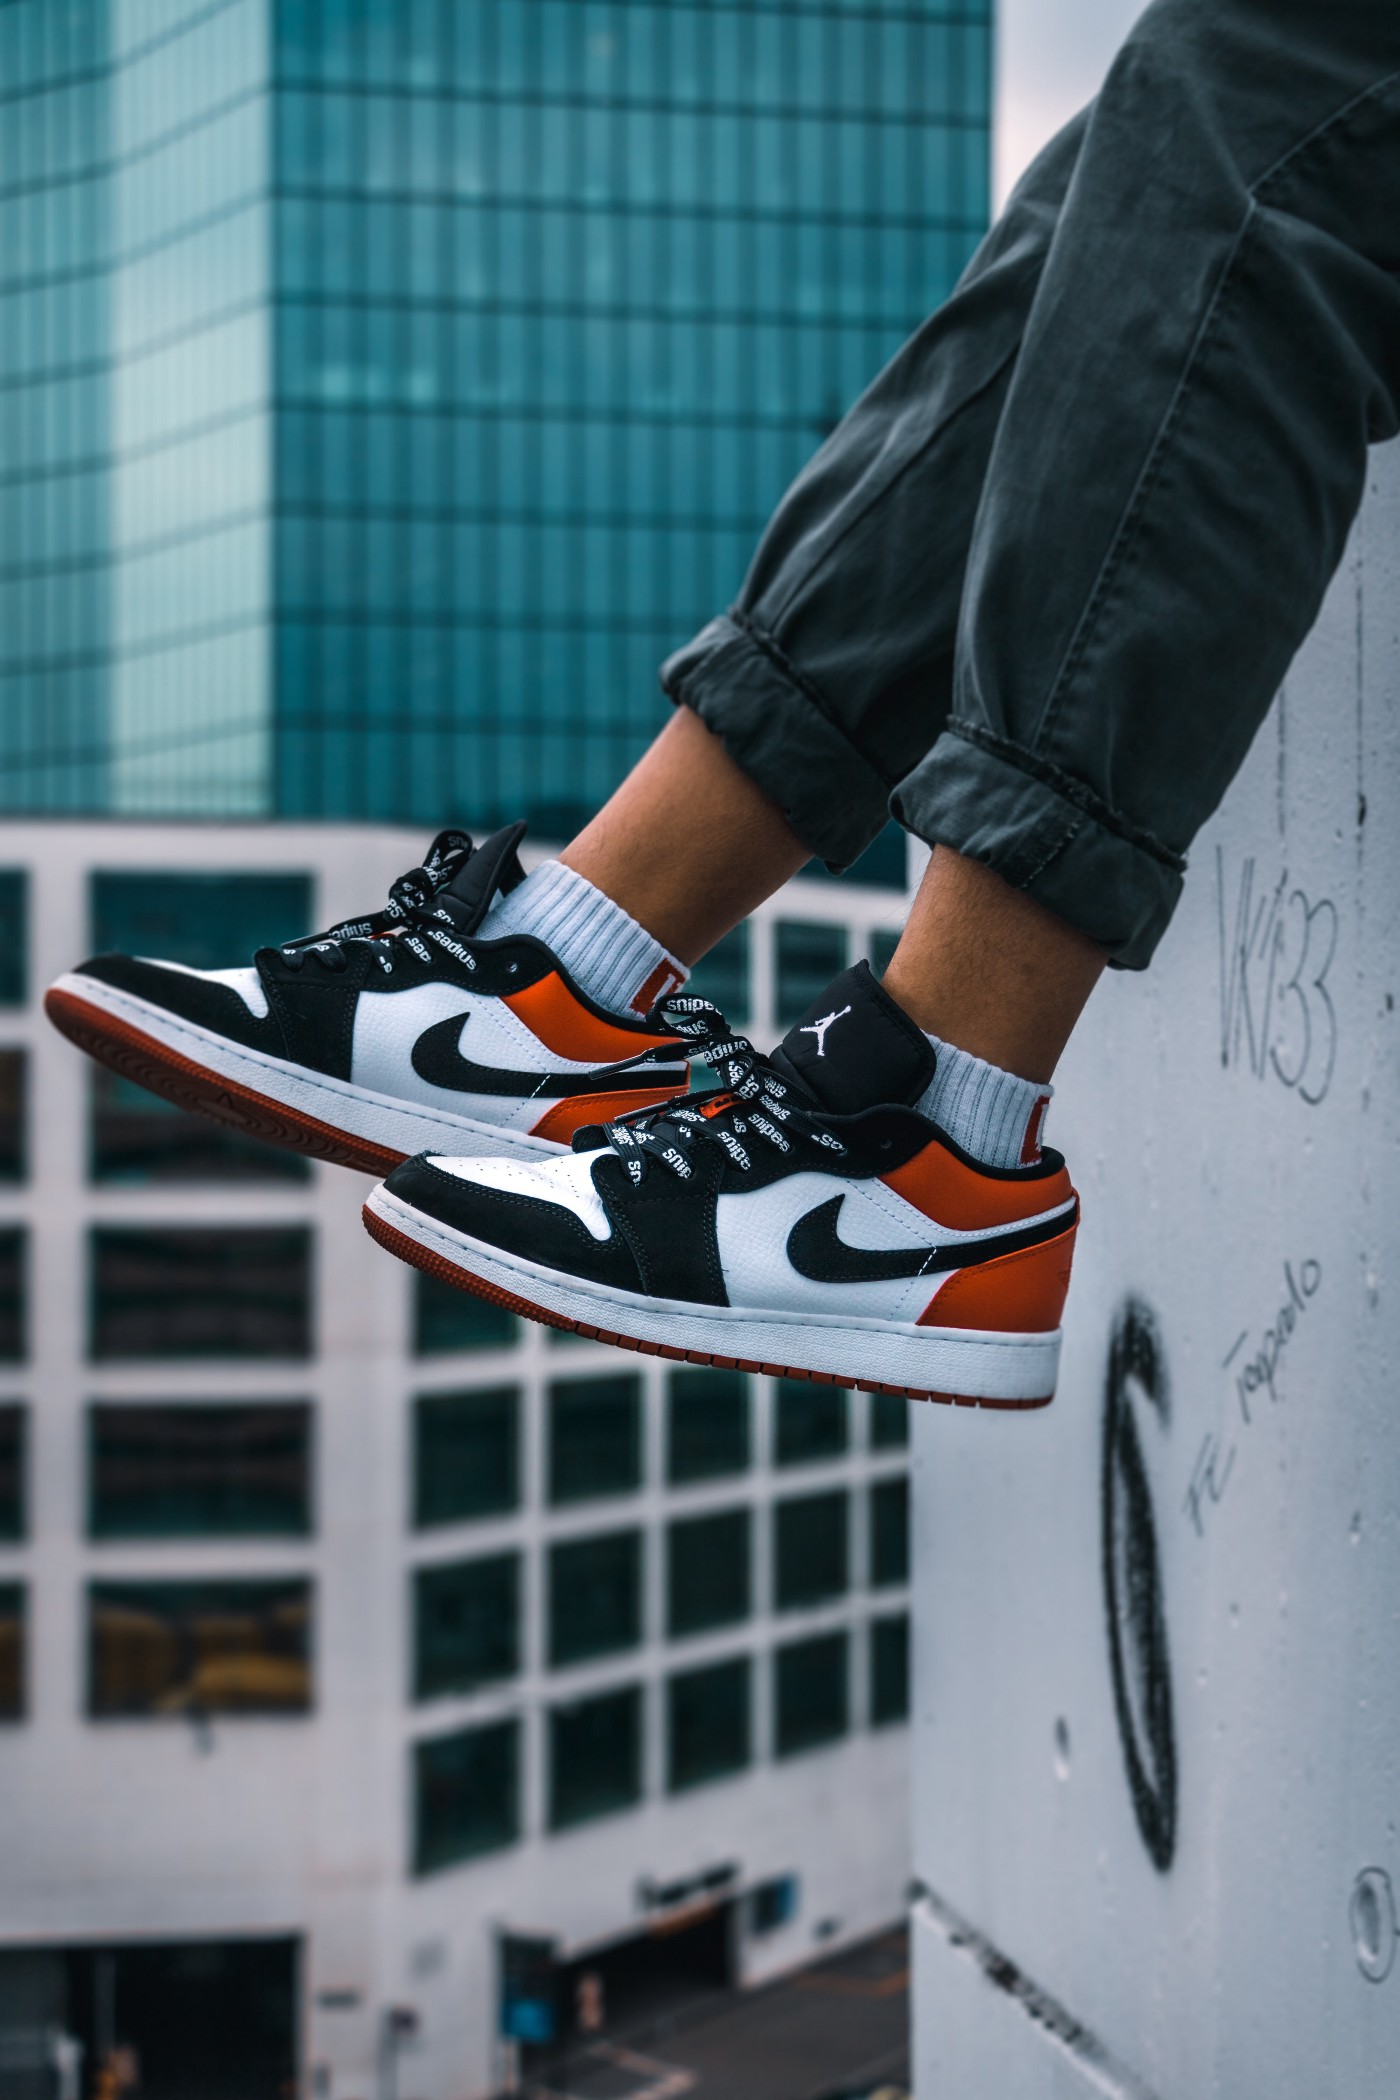 Person with legs dangling from a ledge wearing Nike sneakers